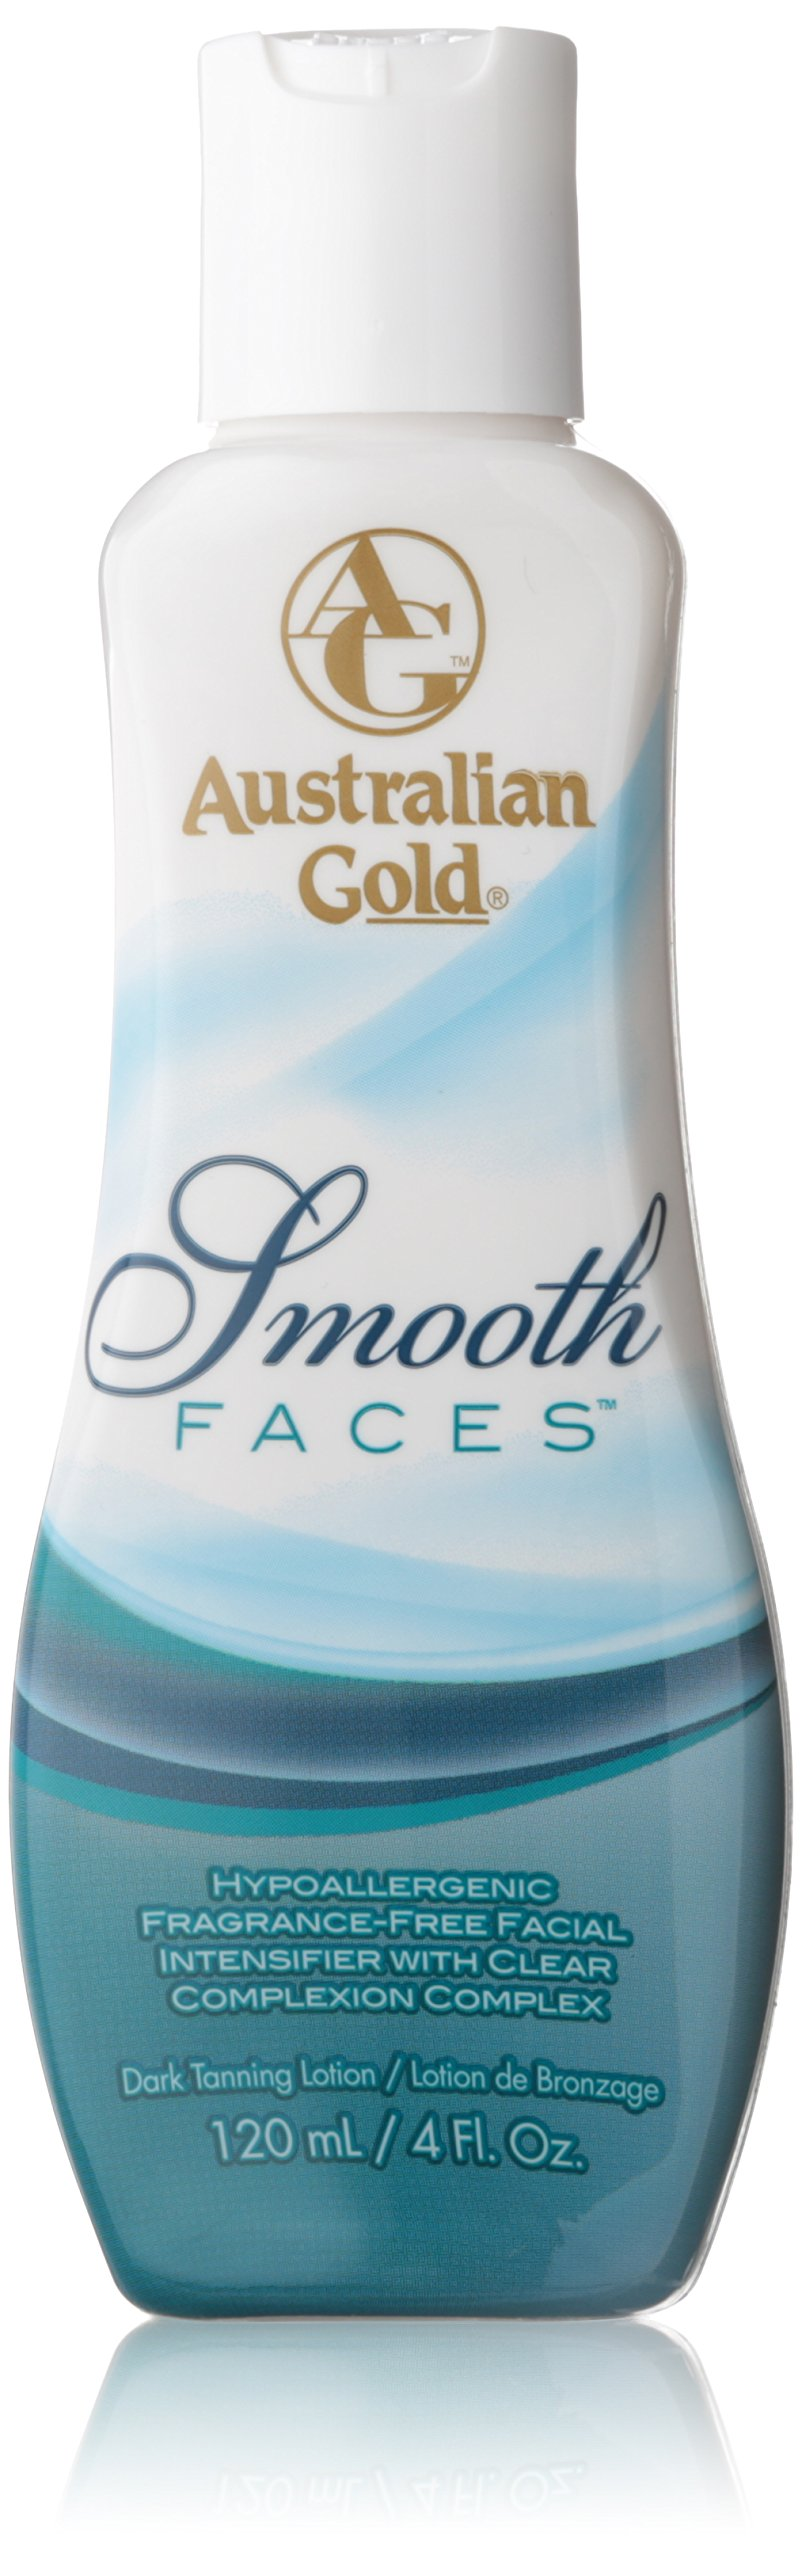 Ausrialian Gold Smooth Faces Facial Intensifier Tanning Lotion, 4 Fluid Ounce by Ausrialian Gold